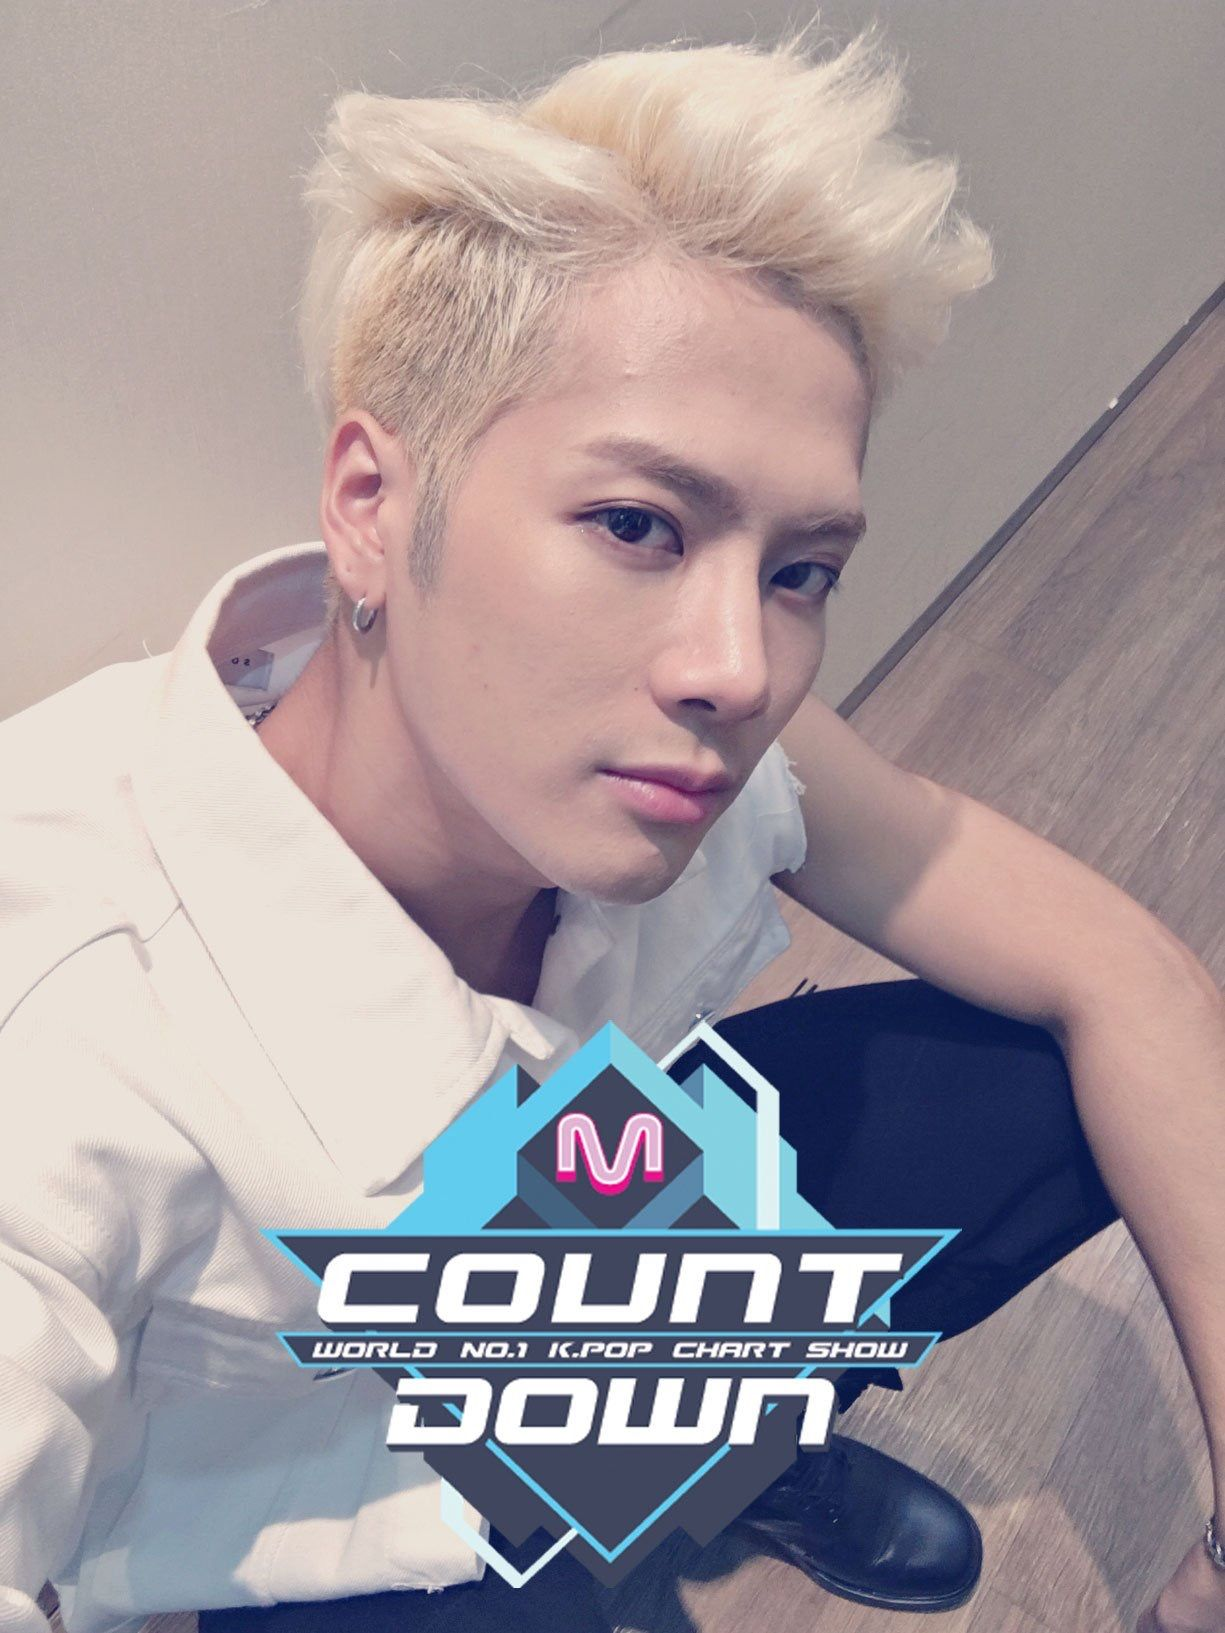 Mcountdown  Got7 | HARD CARRY Jackson Wang  # got7